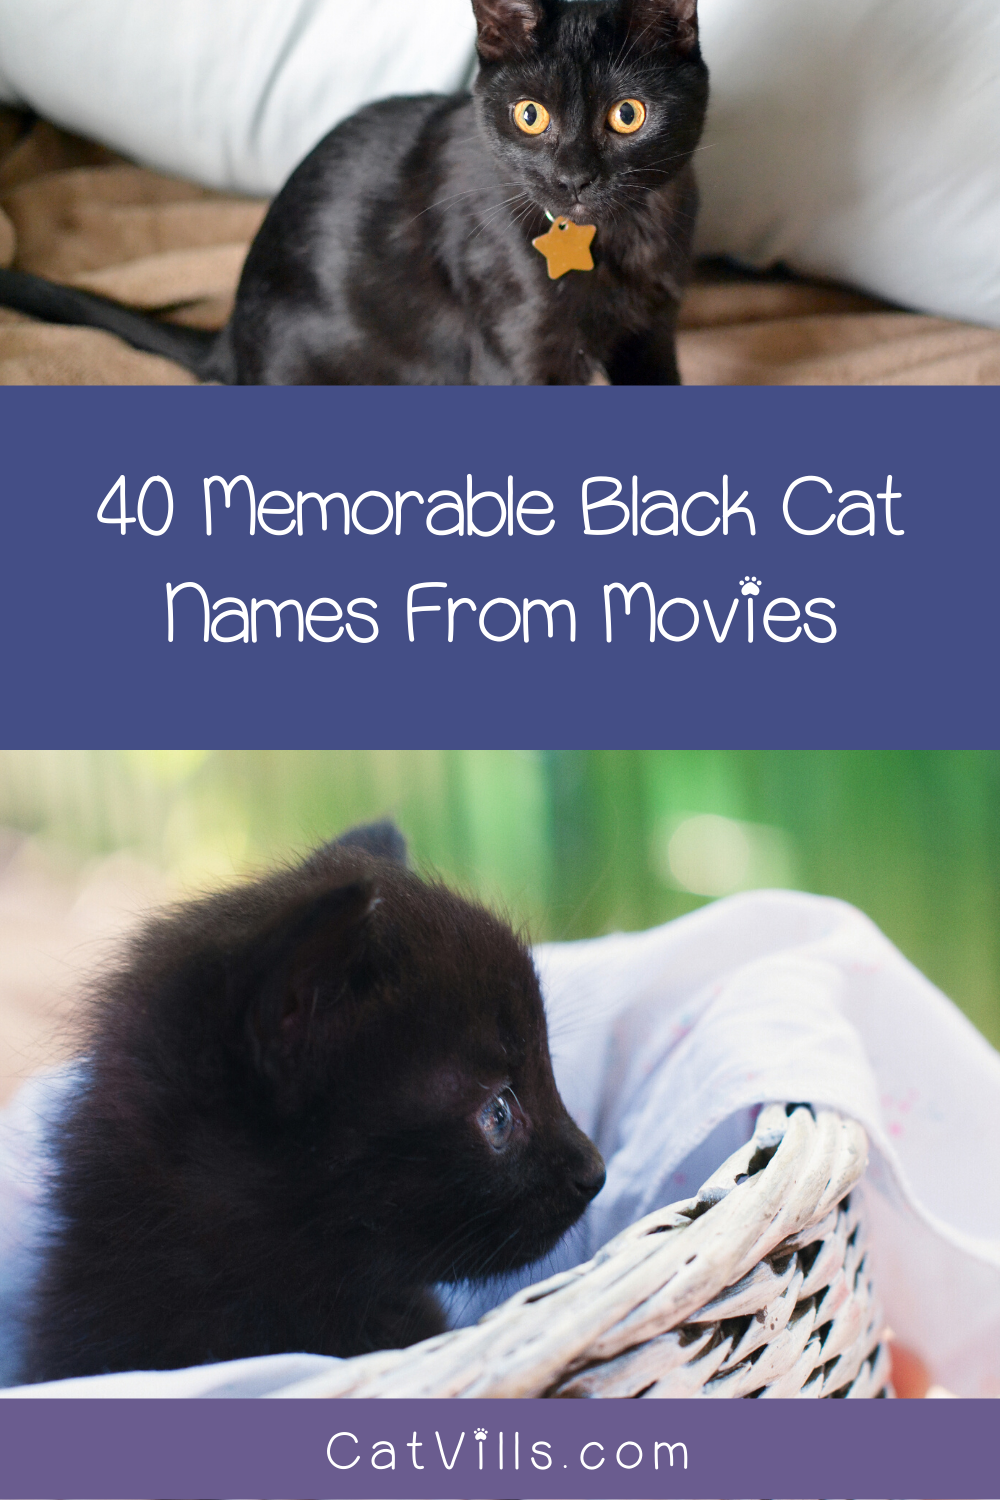 40 Memorable Black Cat Names From Movies CatVills in